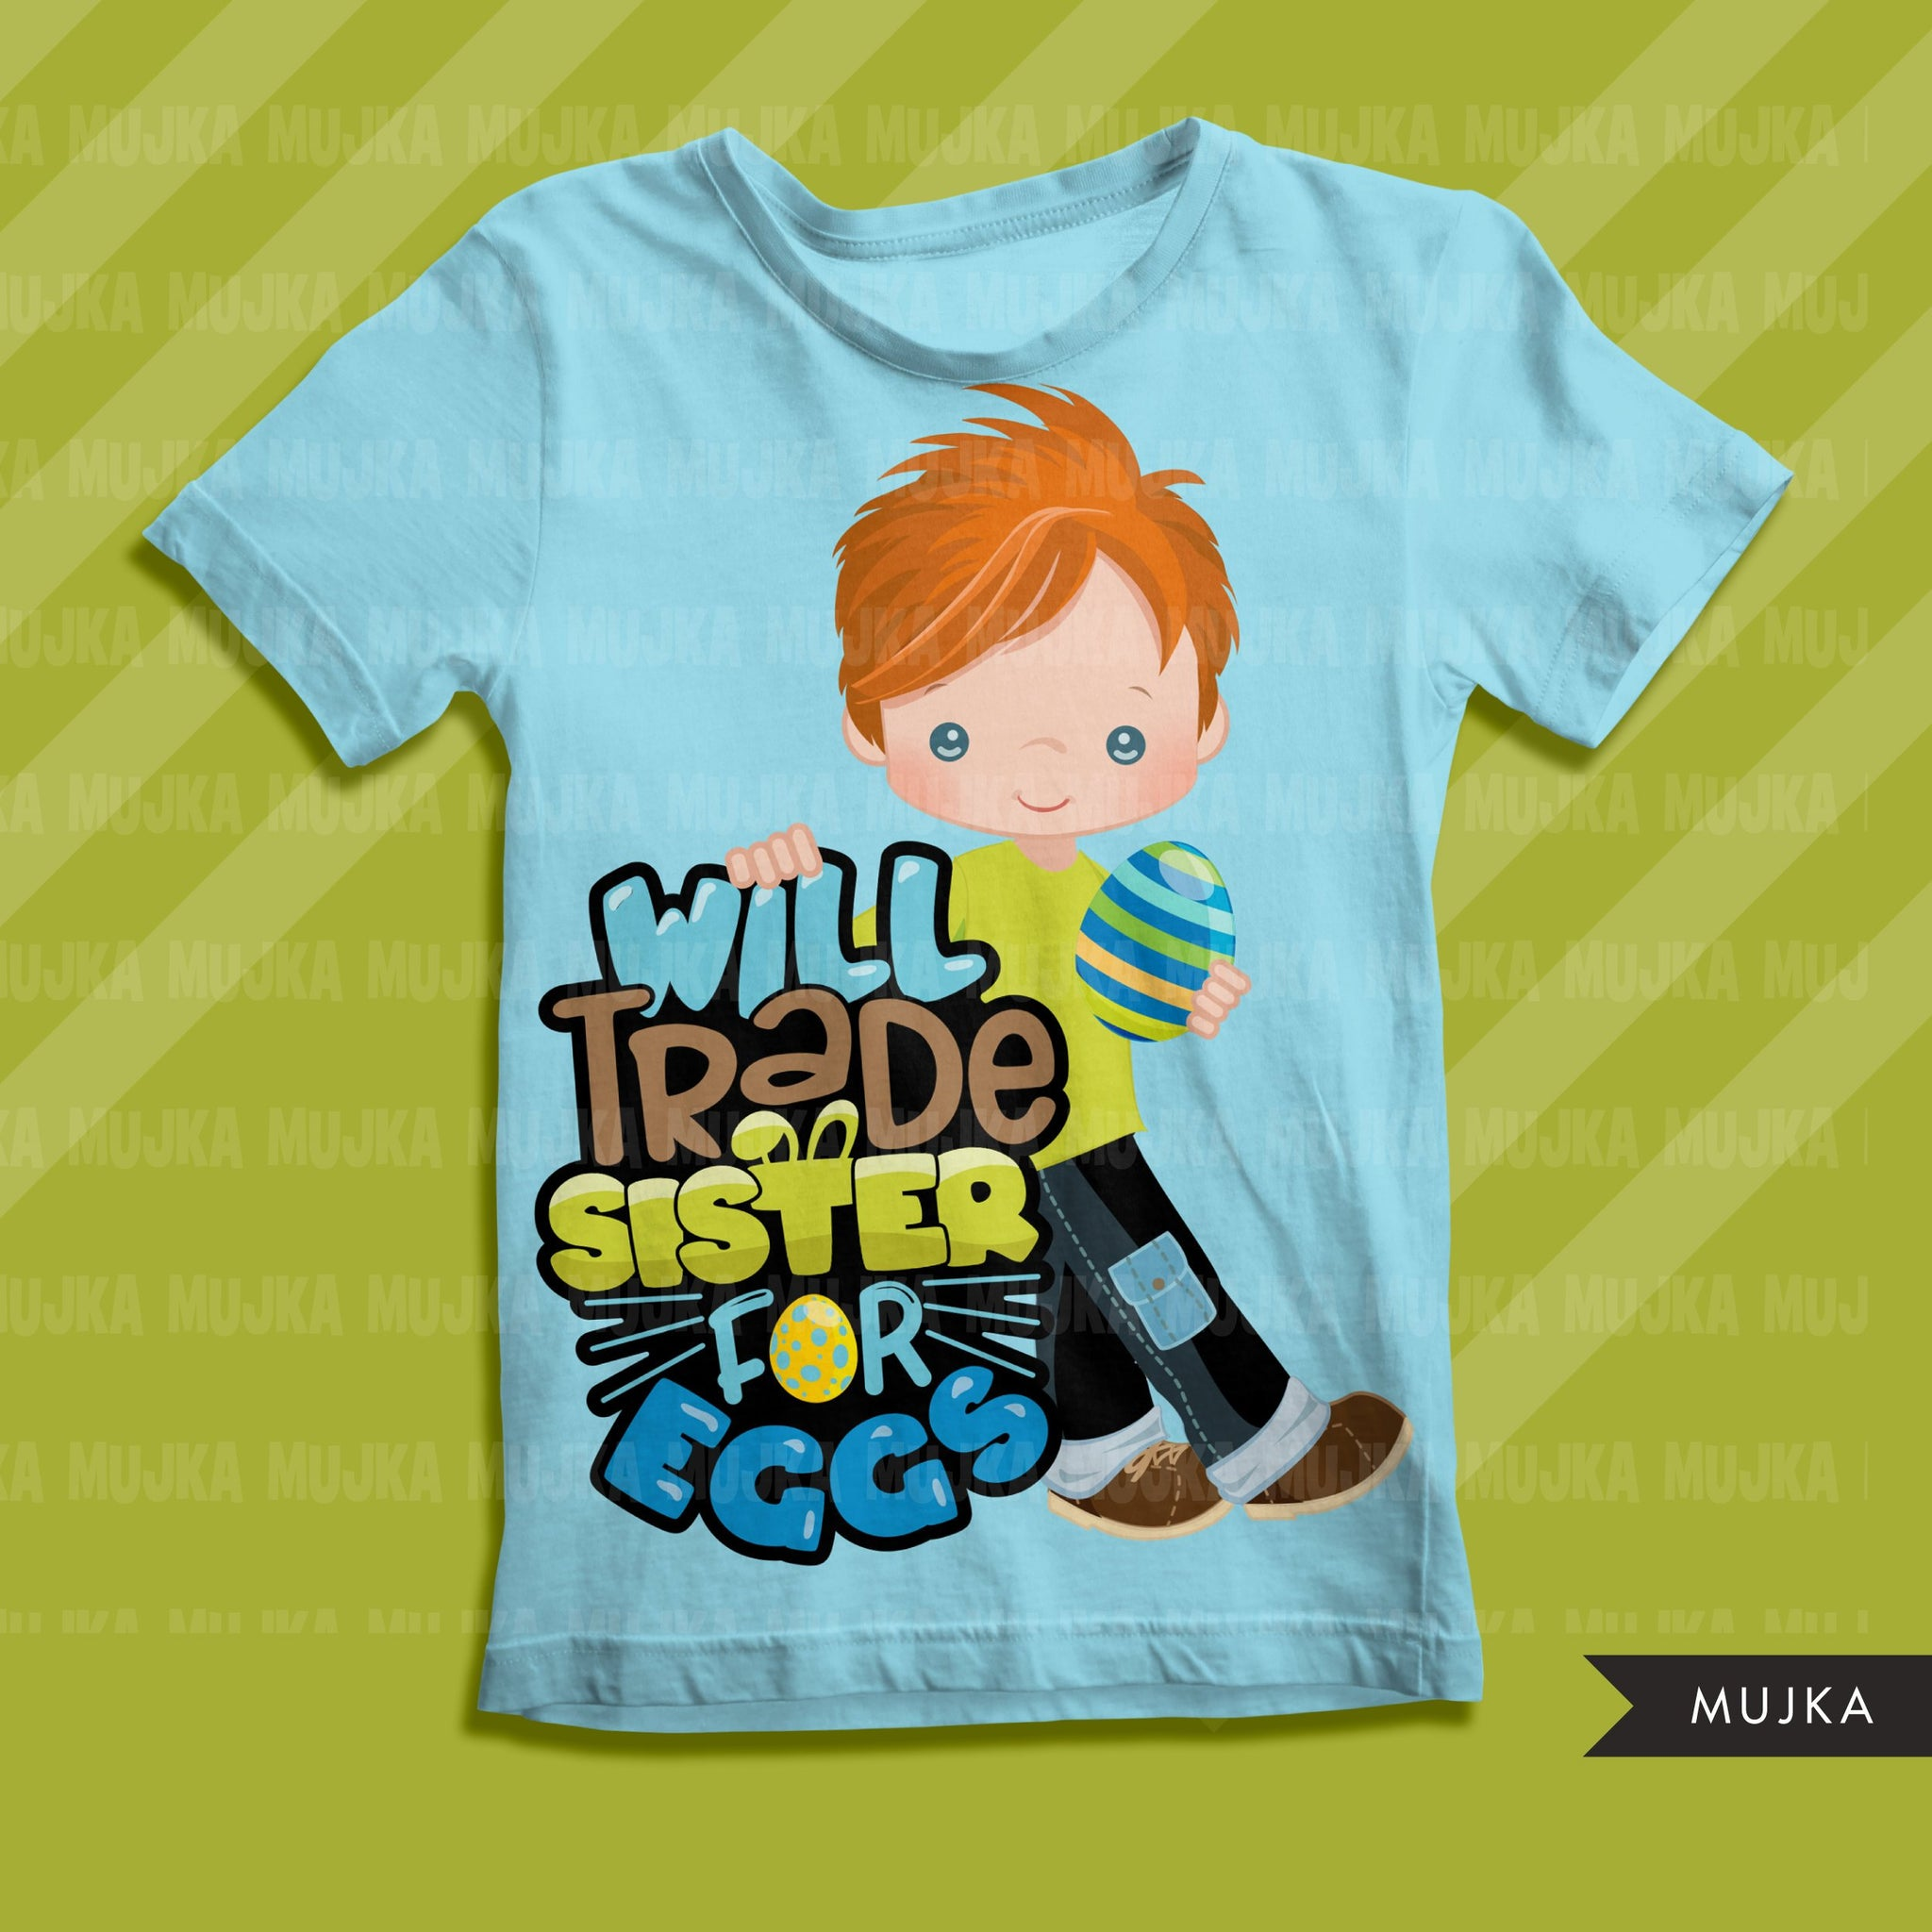 Easter PNG digital, Will trade sister for eggs Printable HTV sublimation image transfer clipart, t-shirt boy graphics